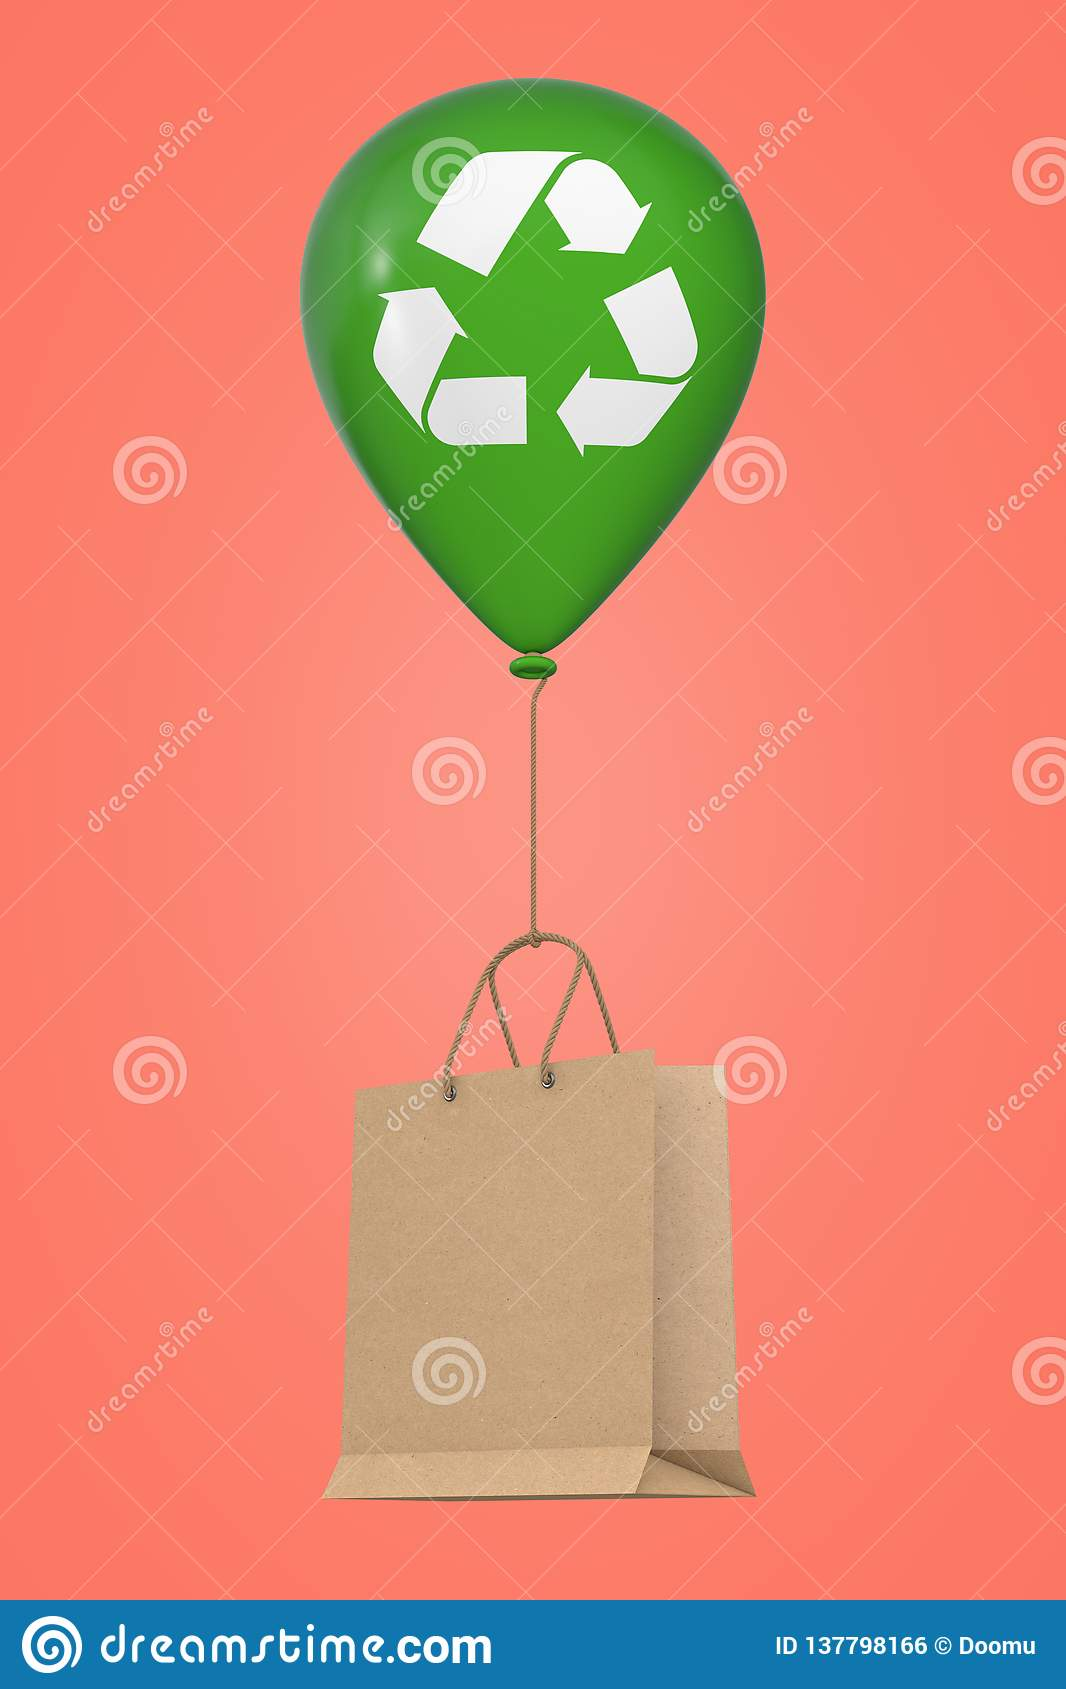 Brown Recycled Paper Shopping Bag Floating with Green Hellium Balloon with Recycle Sign. 3d Rendering